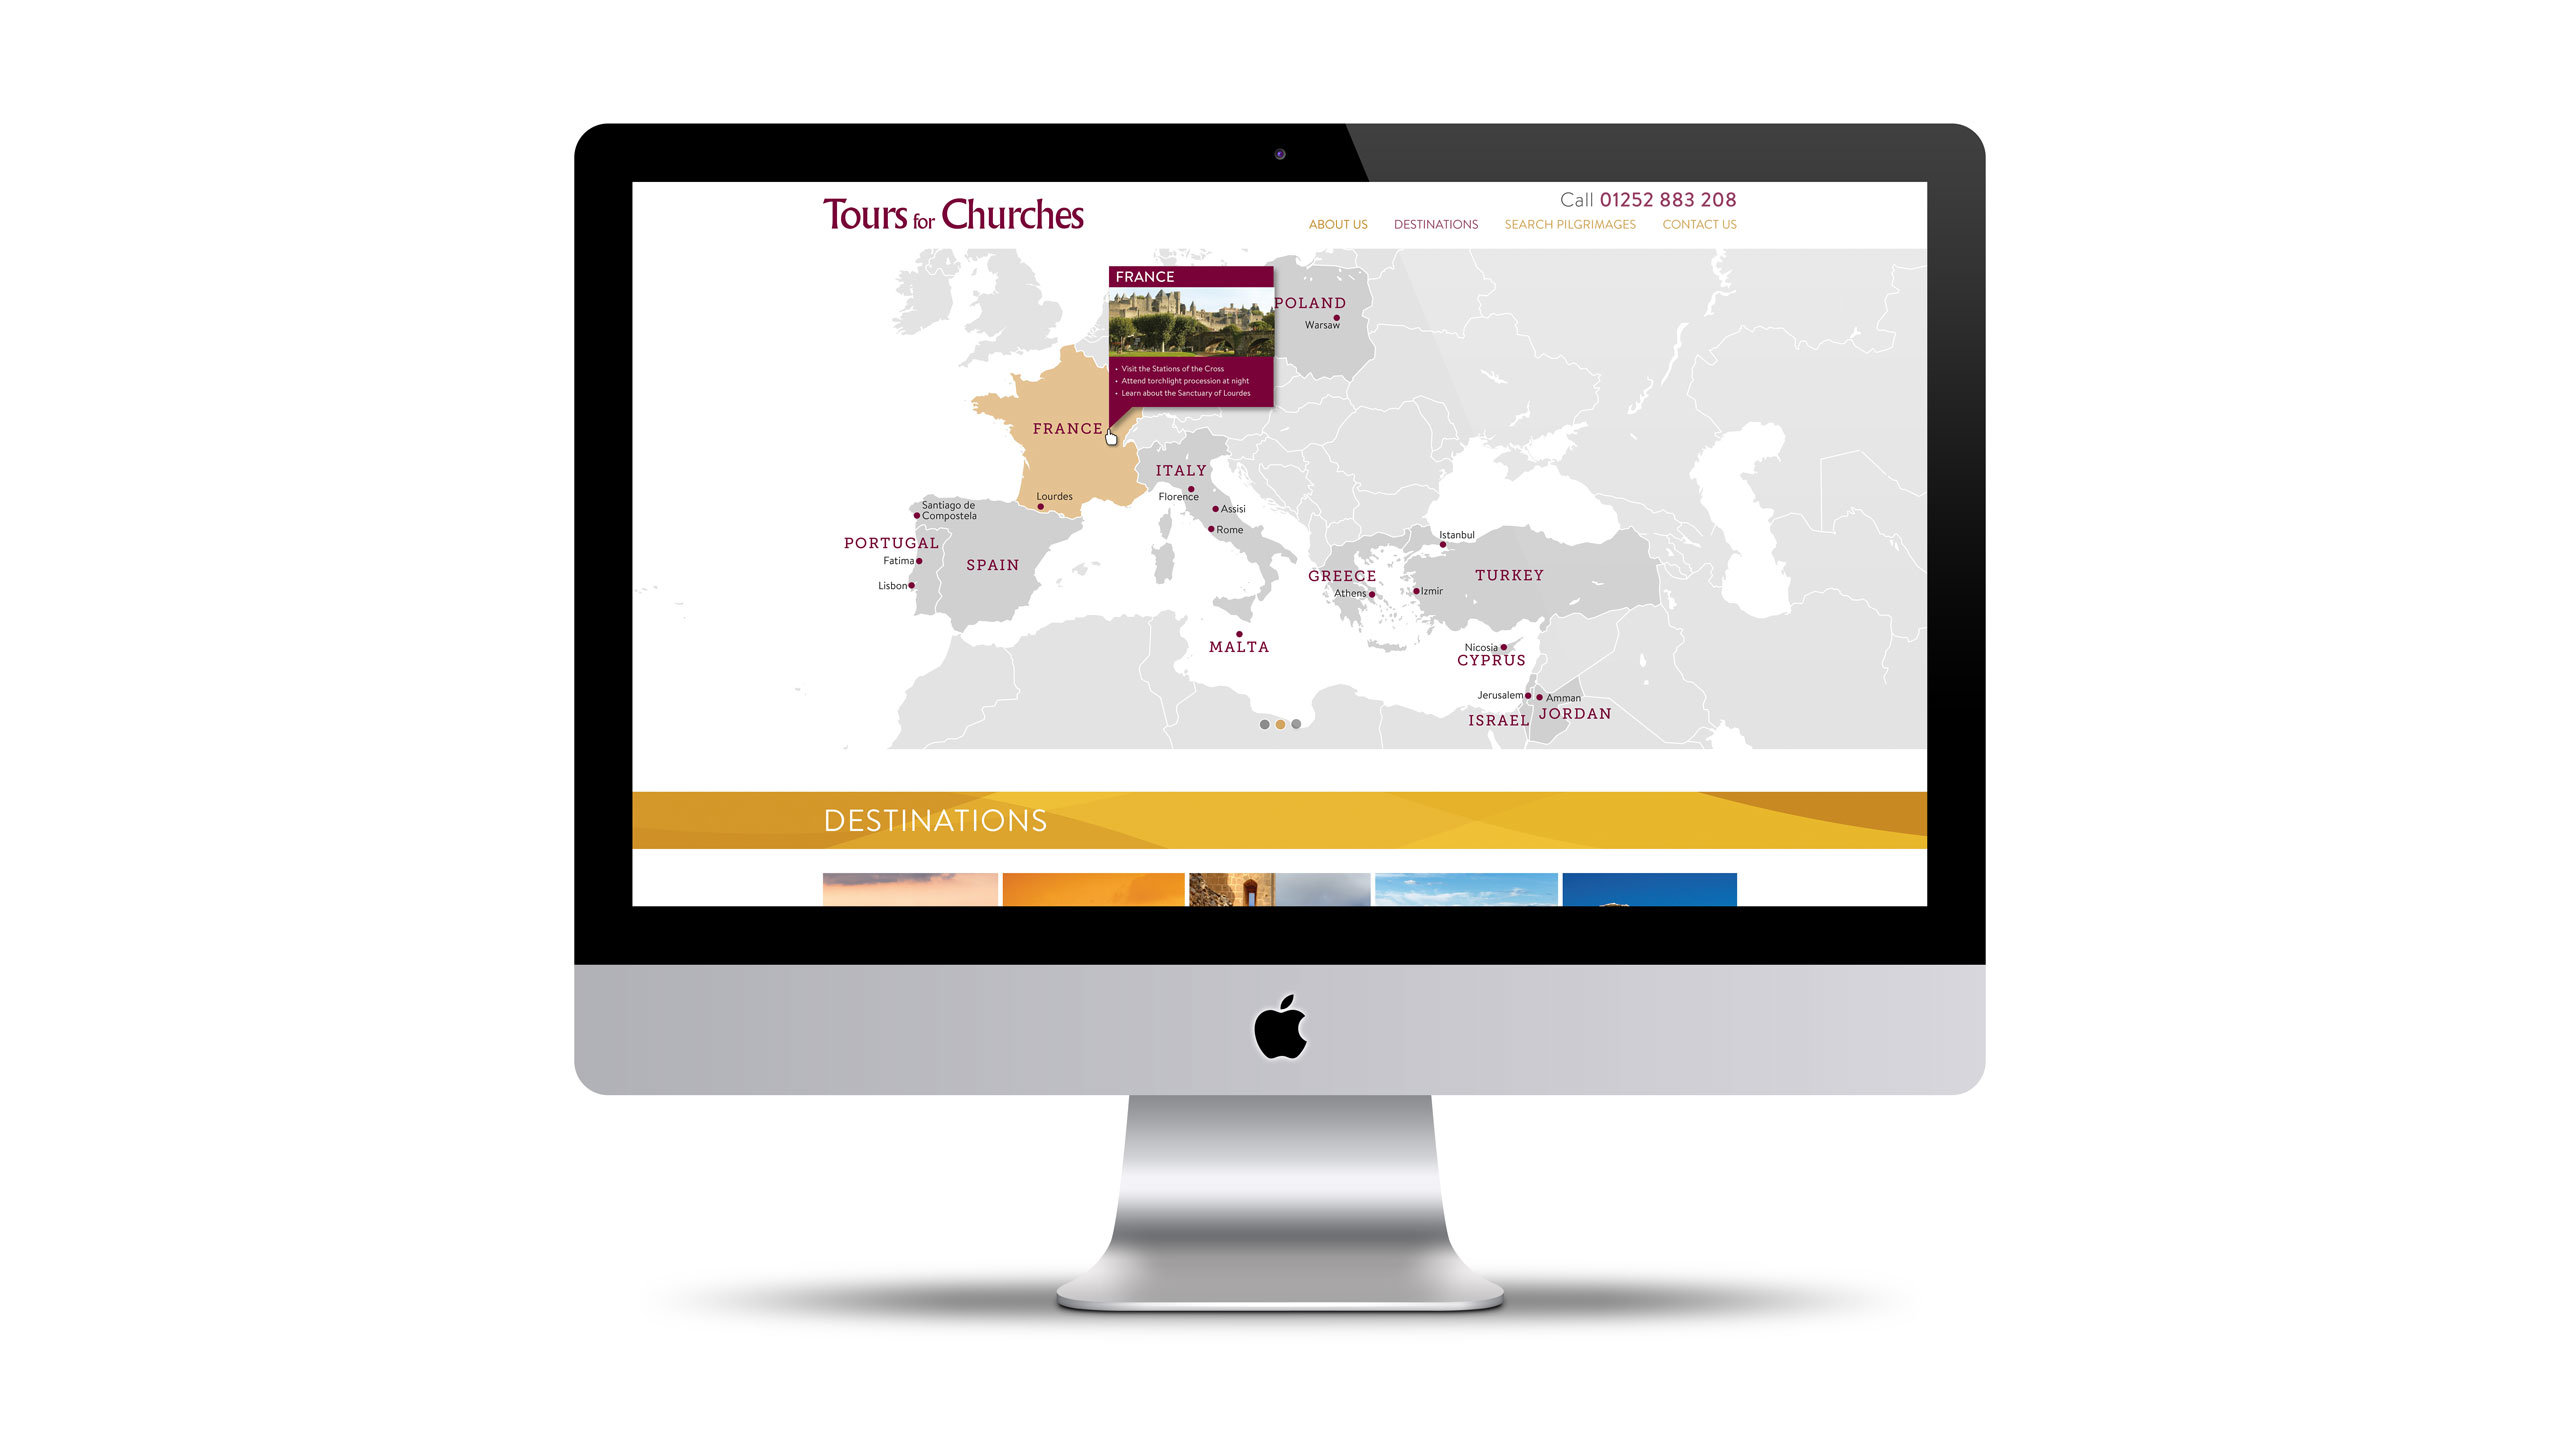 religious tours website design map page imac tours for churches